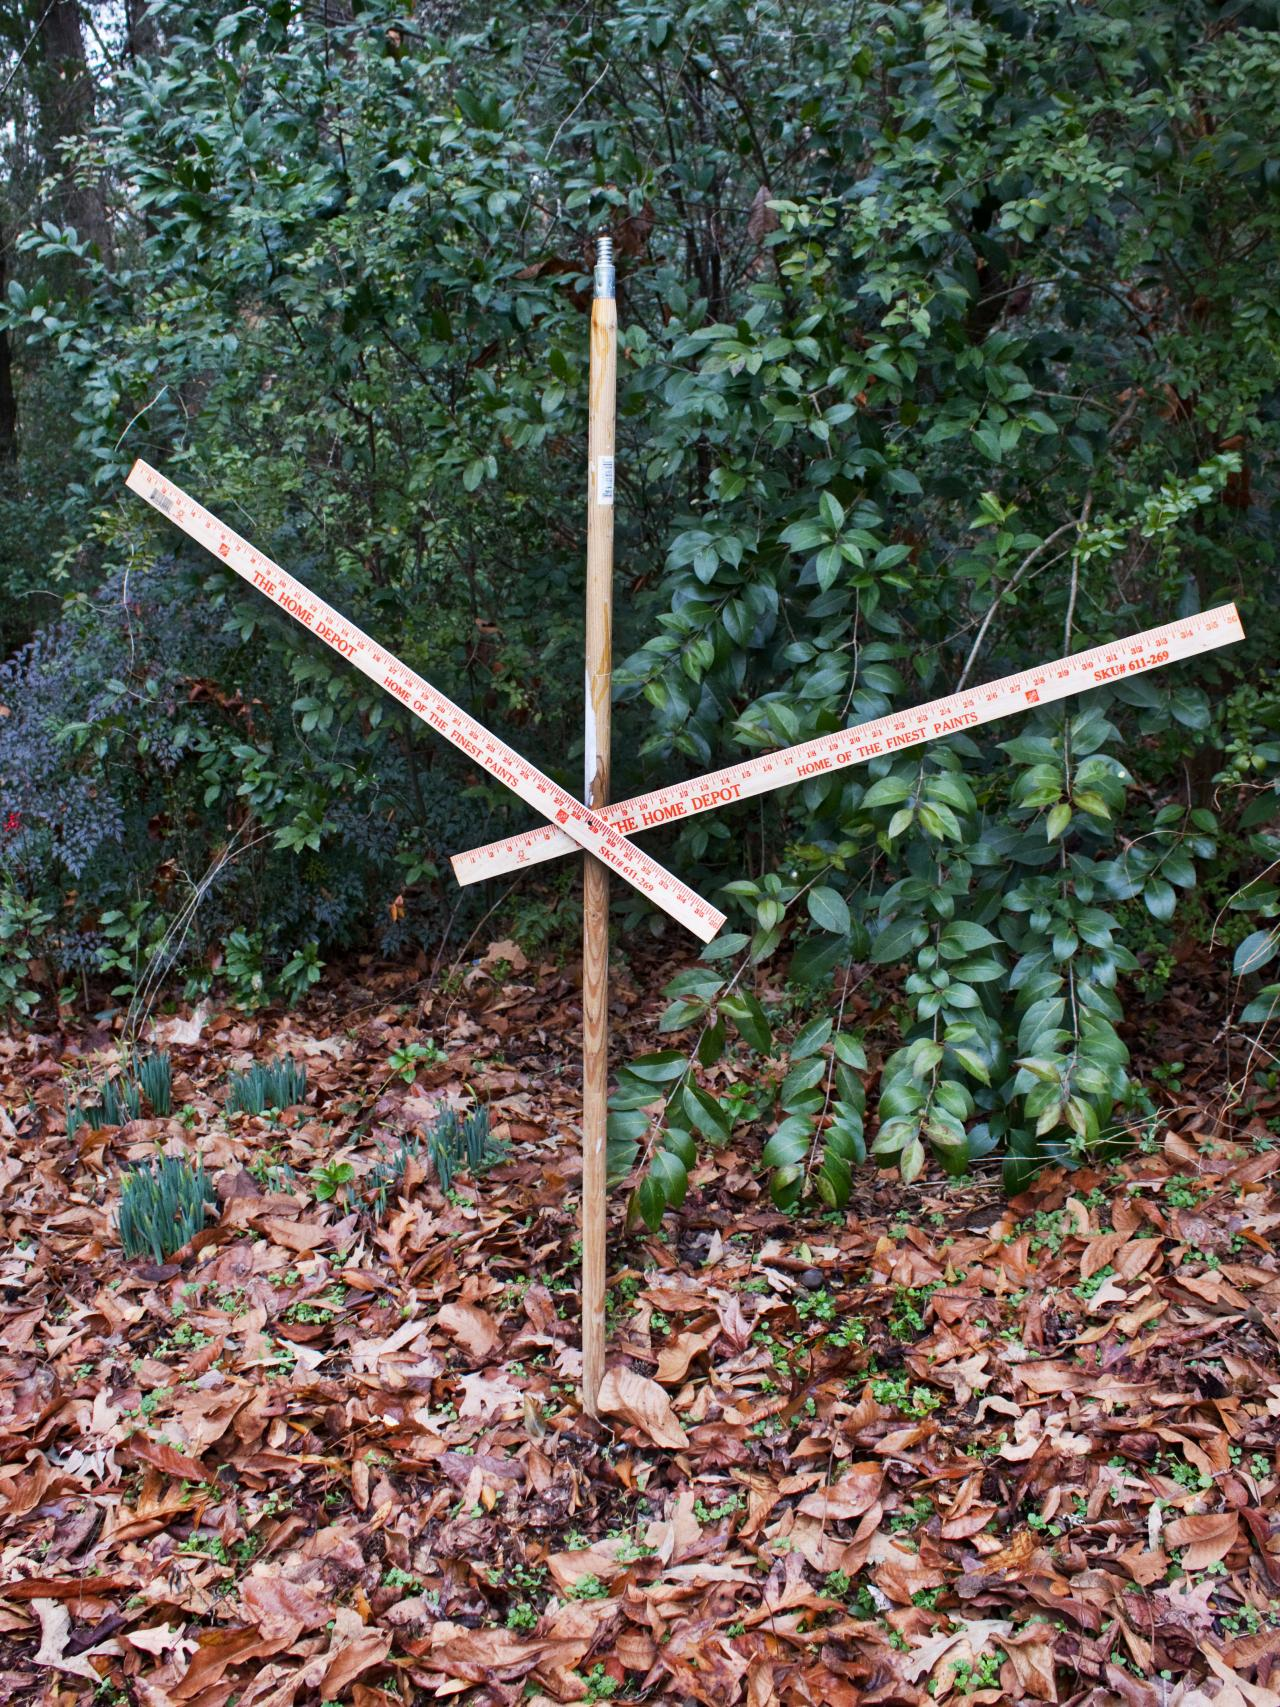 Halloween lawn decorations diy - Secure Extension Pole